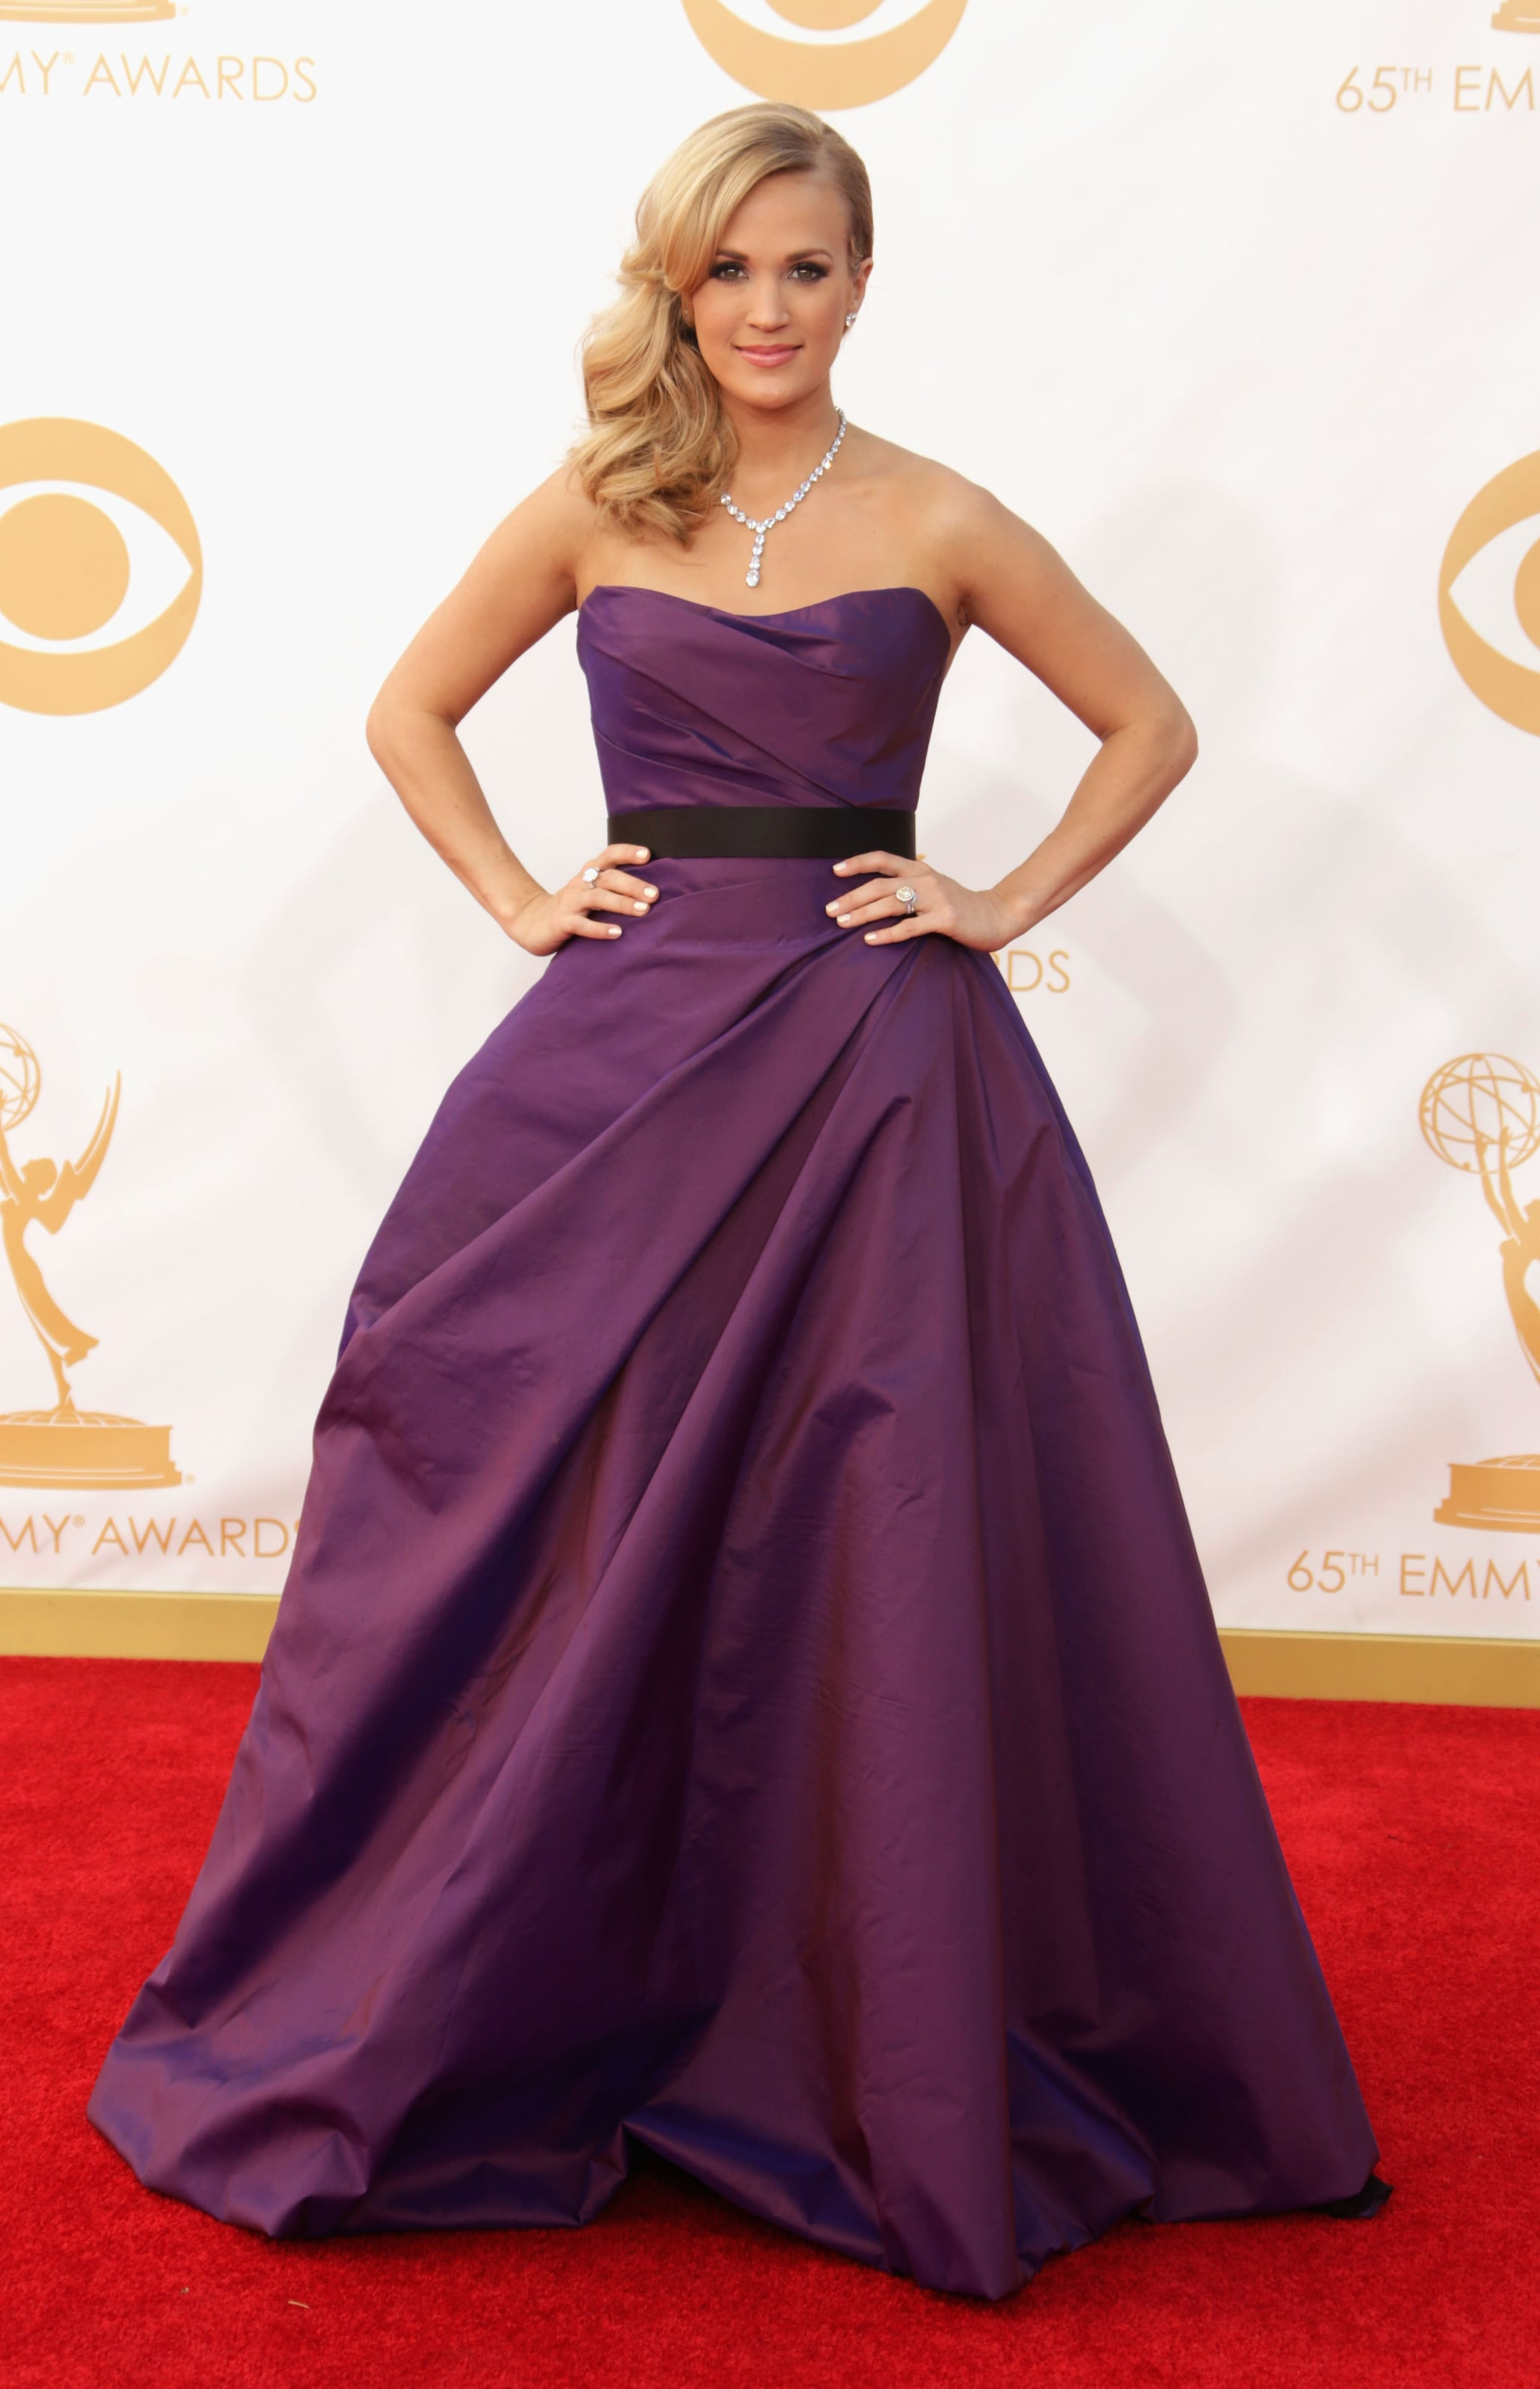 It was full glamour for Carrie Underwood, who picked a ball gown by Romona Keveza.